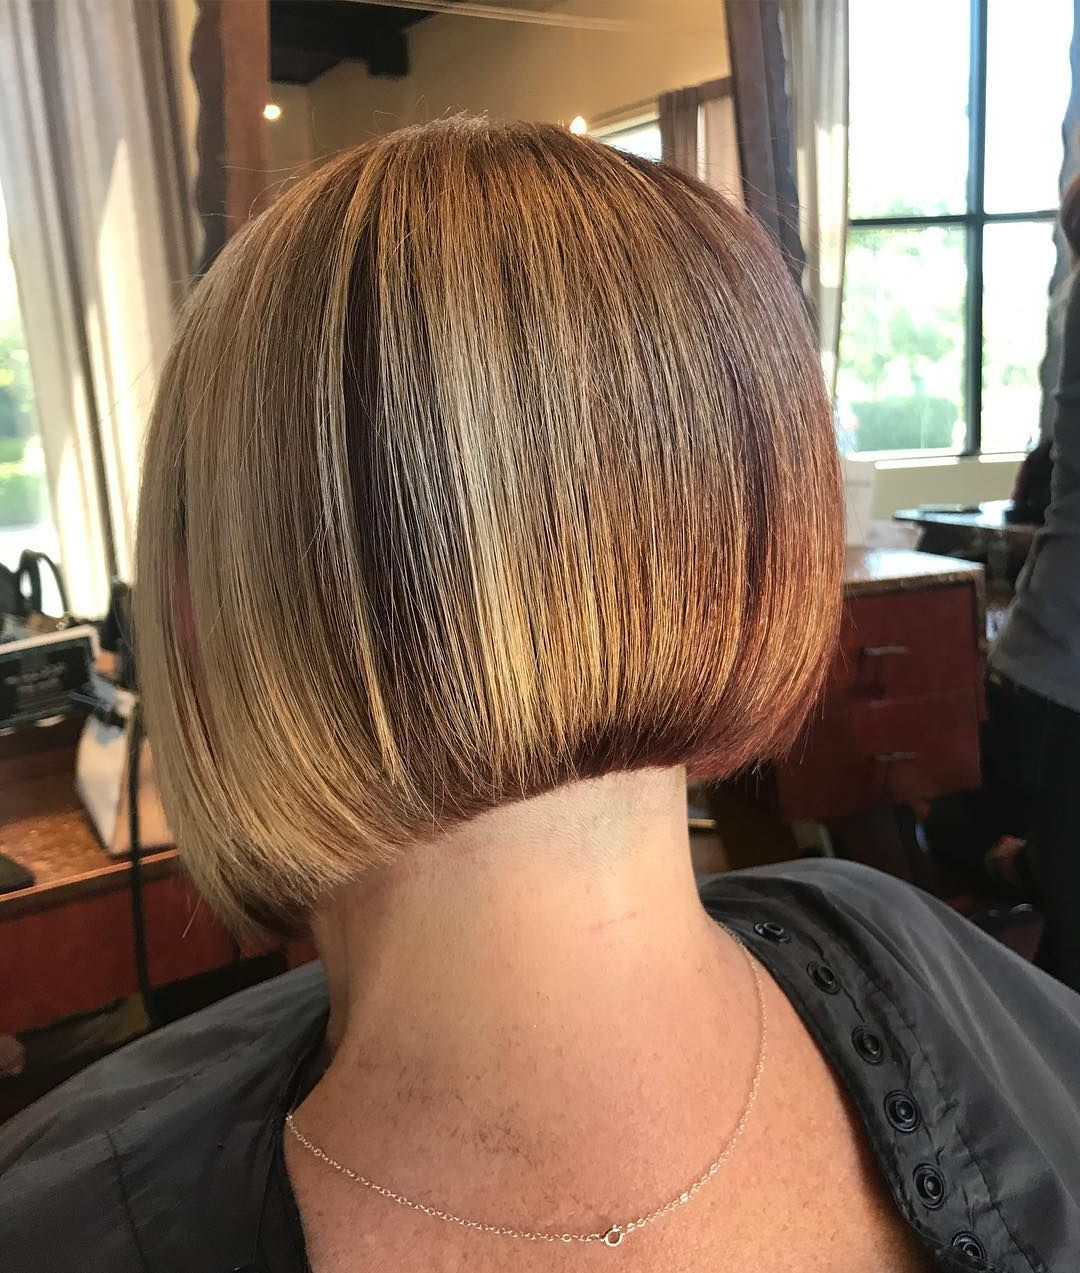 Bob In Well Known Classic Bob Hairstyles With Side Part (View 10 of 20)